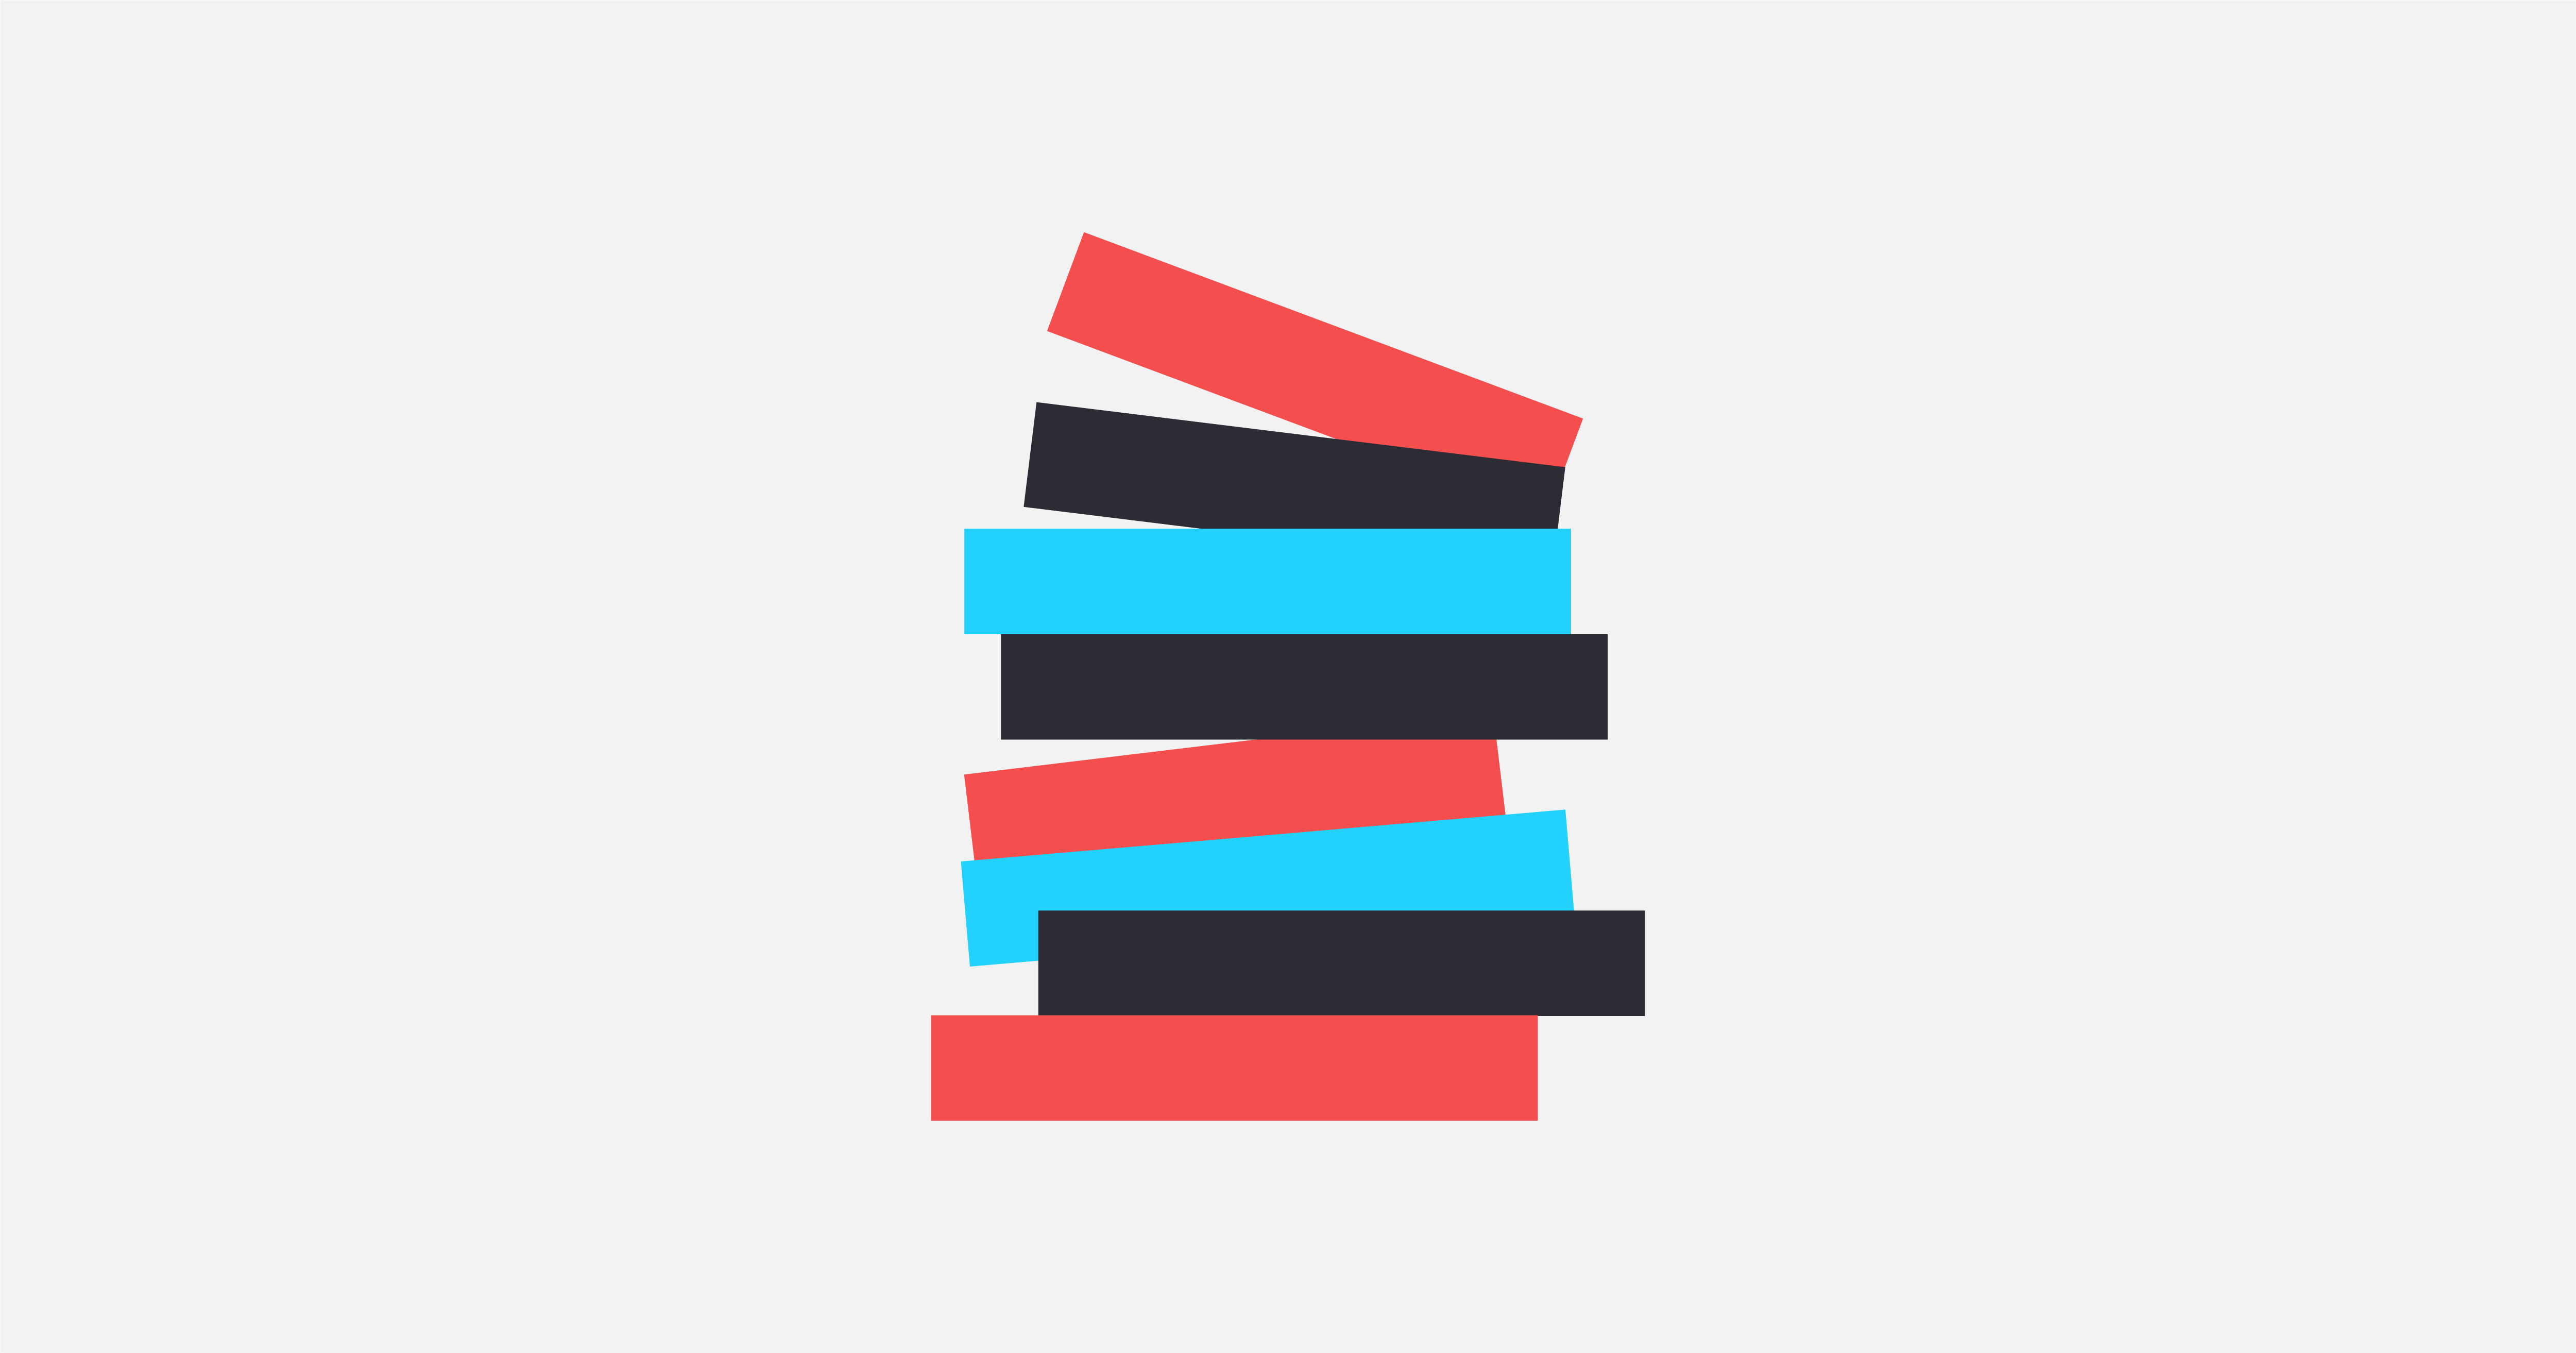 A graphic of a stack of books